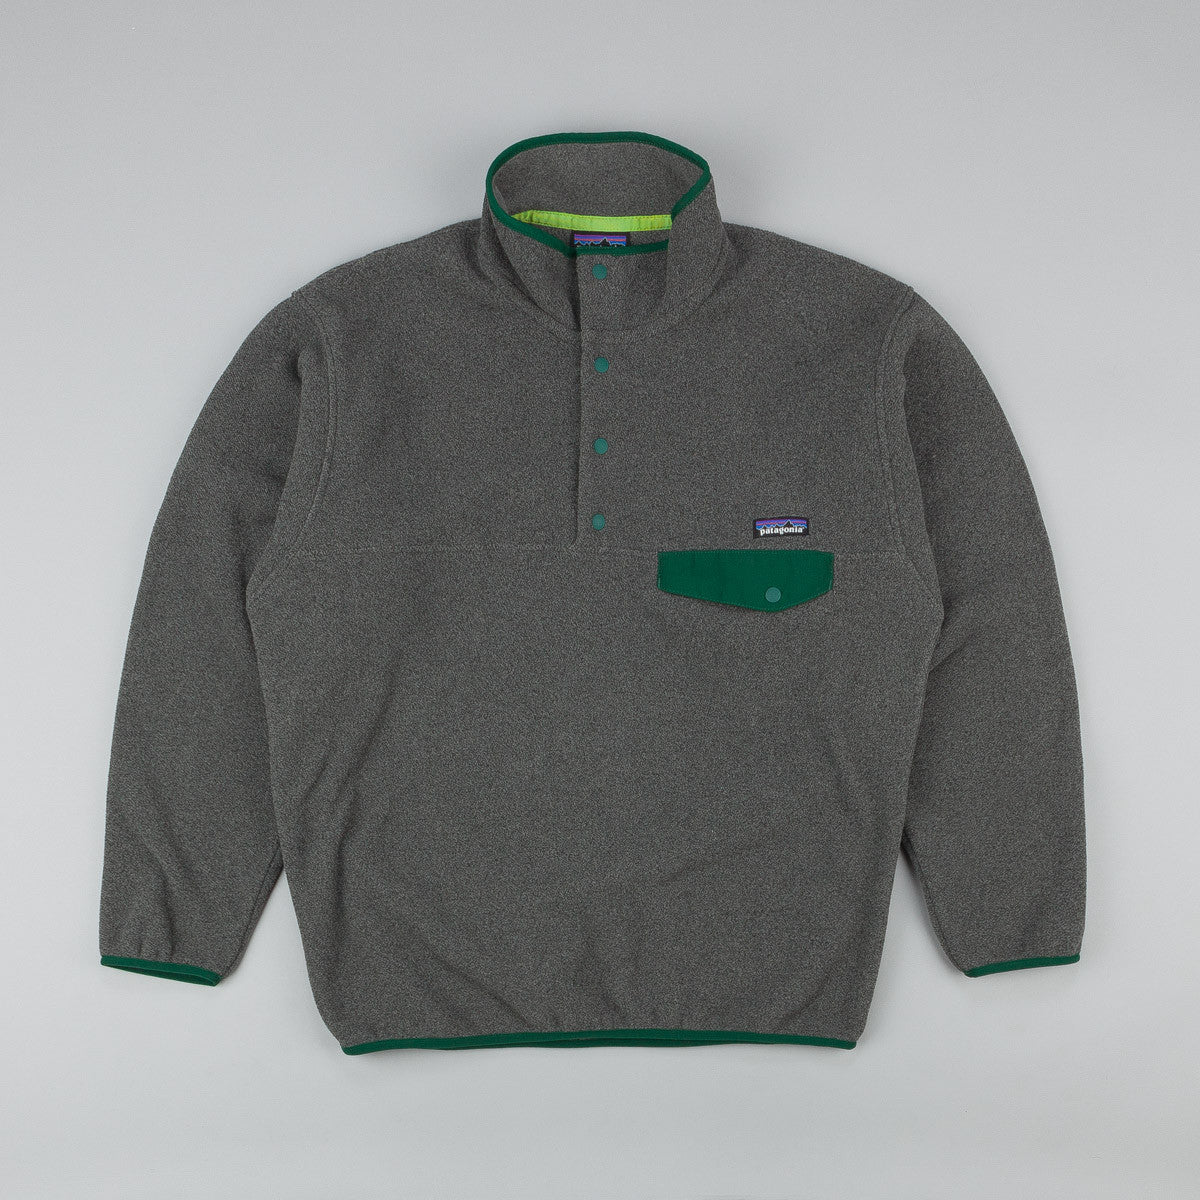 Patagonia Synchilla Snap-T Pullover Fleece - Nickel / Hunter Green